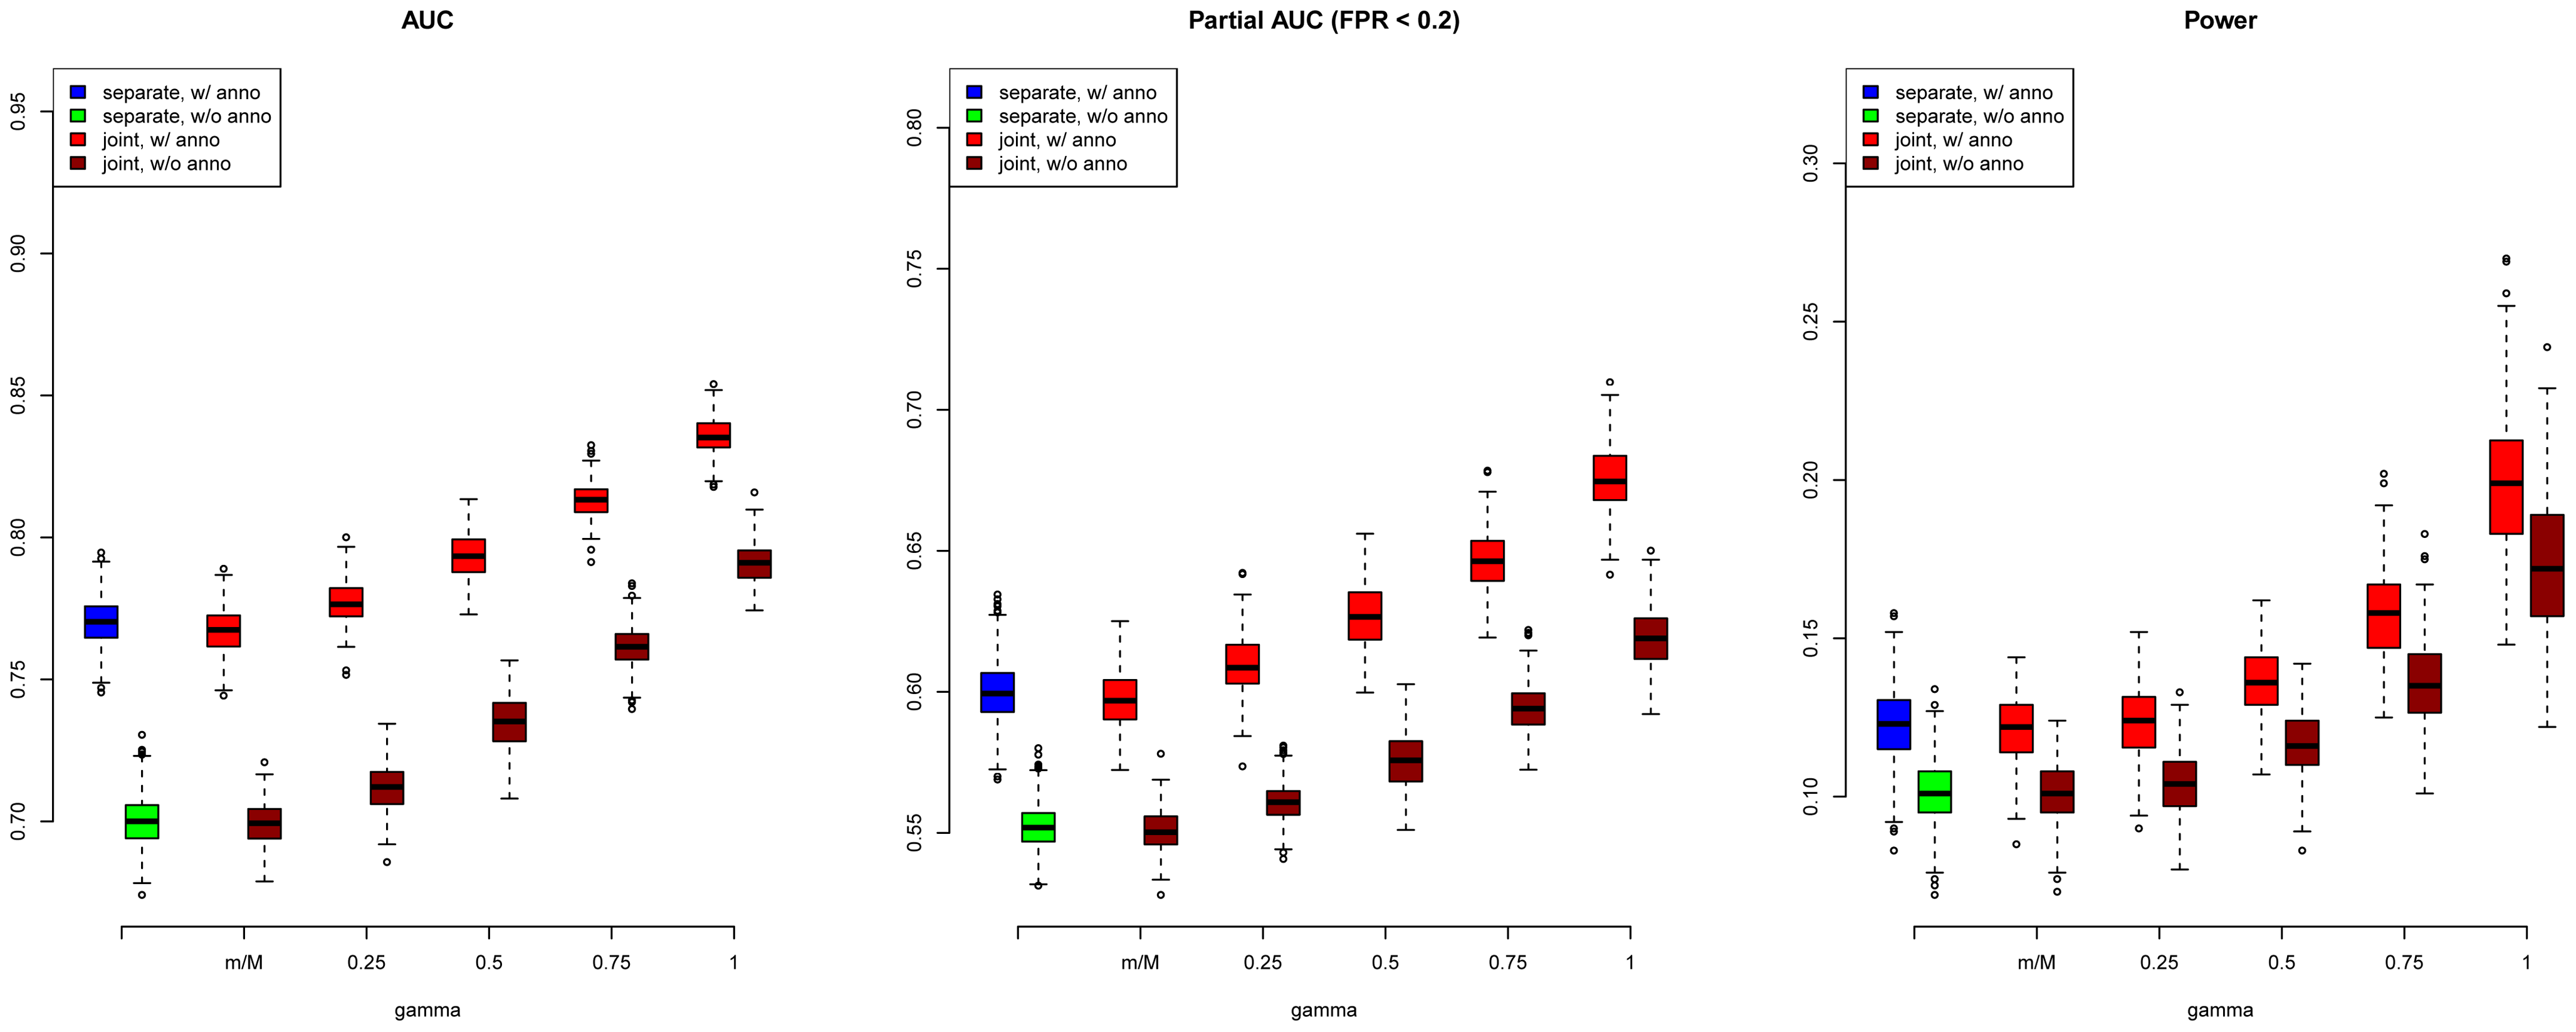 AUC (left), partial AUC (Middle) and power (right) of GPA for SNP prioritization with sample size =5000 and number of risk SNPs =1000.